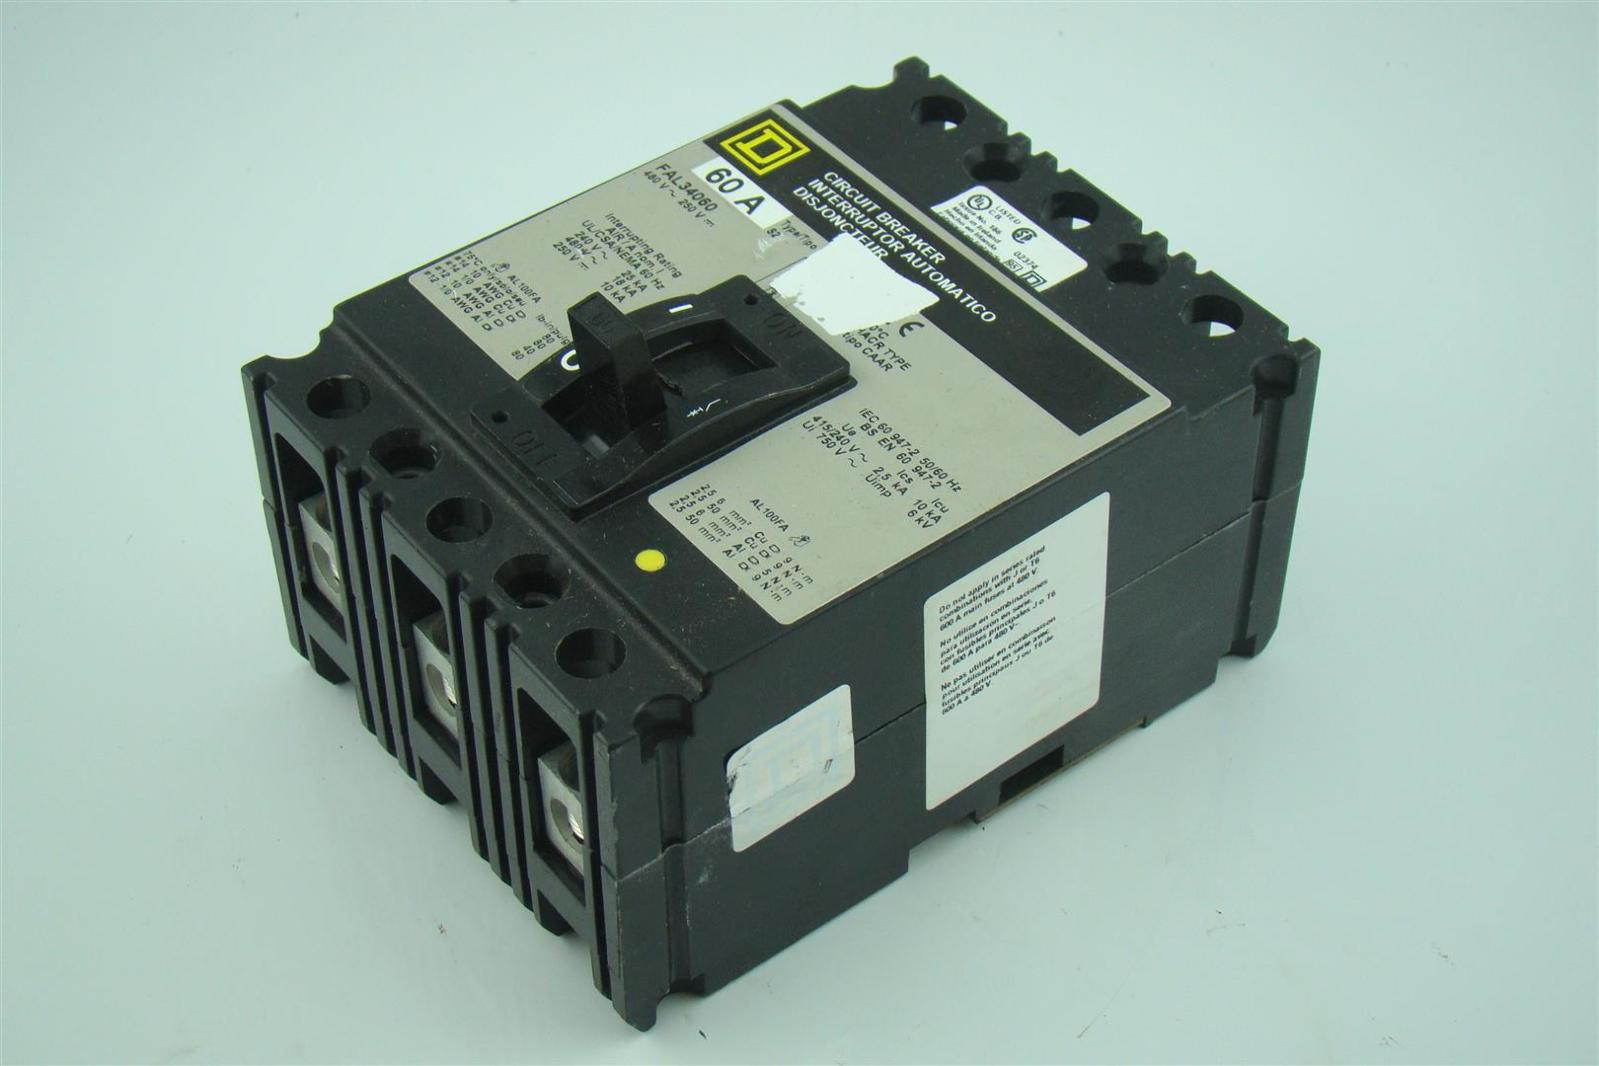 Details about Square D 60 Amp Thermal Magnetic Circuit Breaker FAL34060